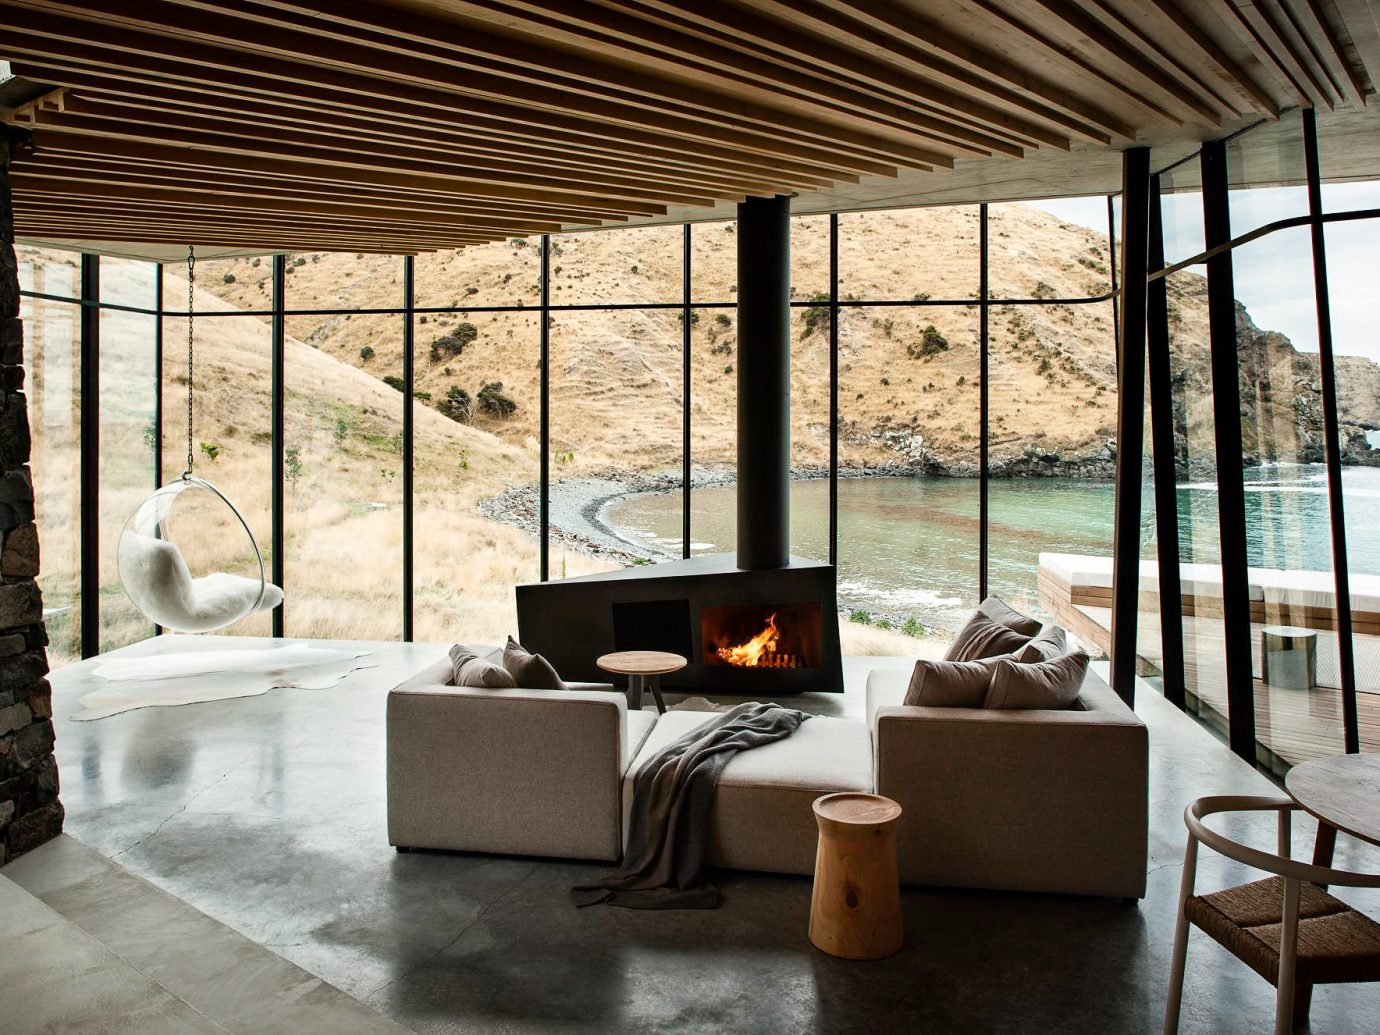 Lounge at Annandale, New Zealand